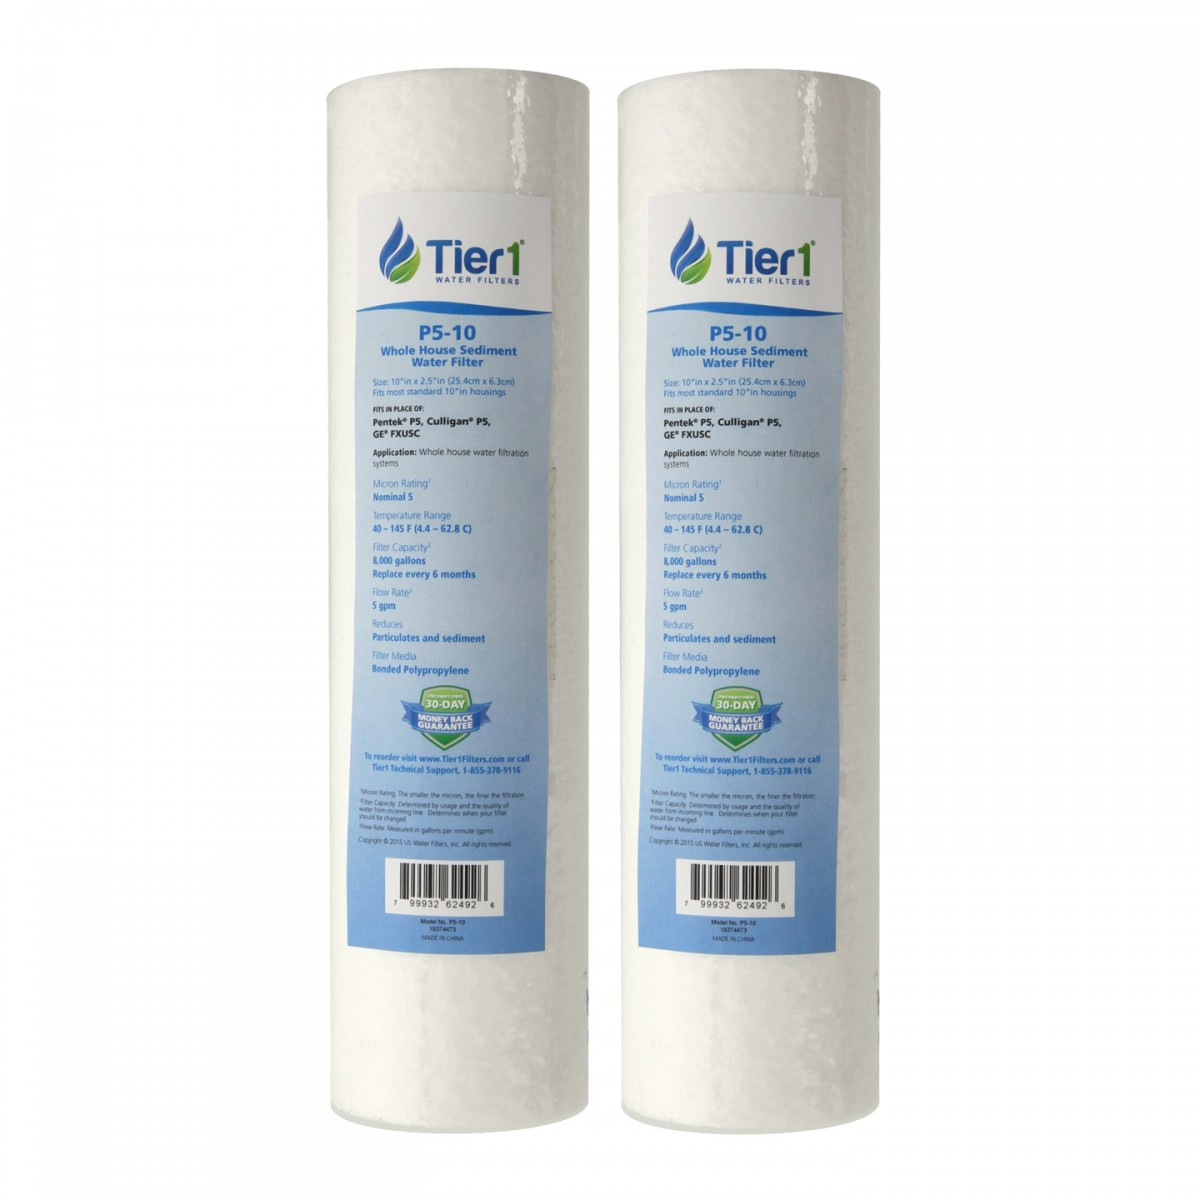 culligan whole house water filter. P5-D Culligan Comparable Whole House Filter Replacement Cartridge By Tier1 (2-Pack) Water